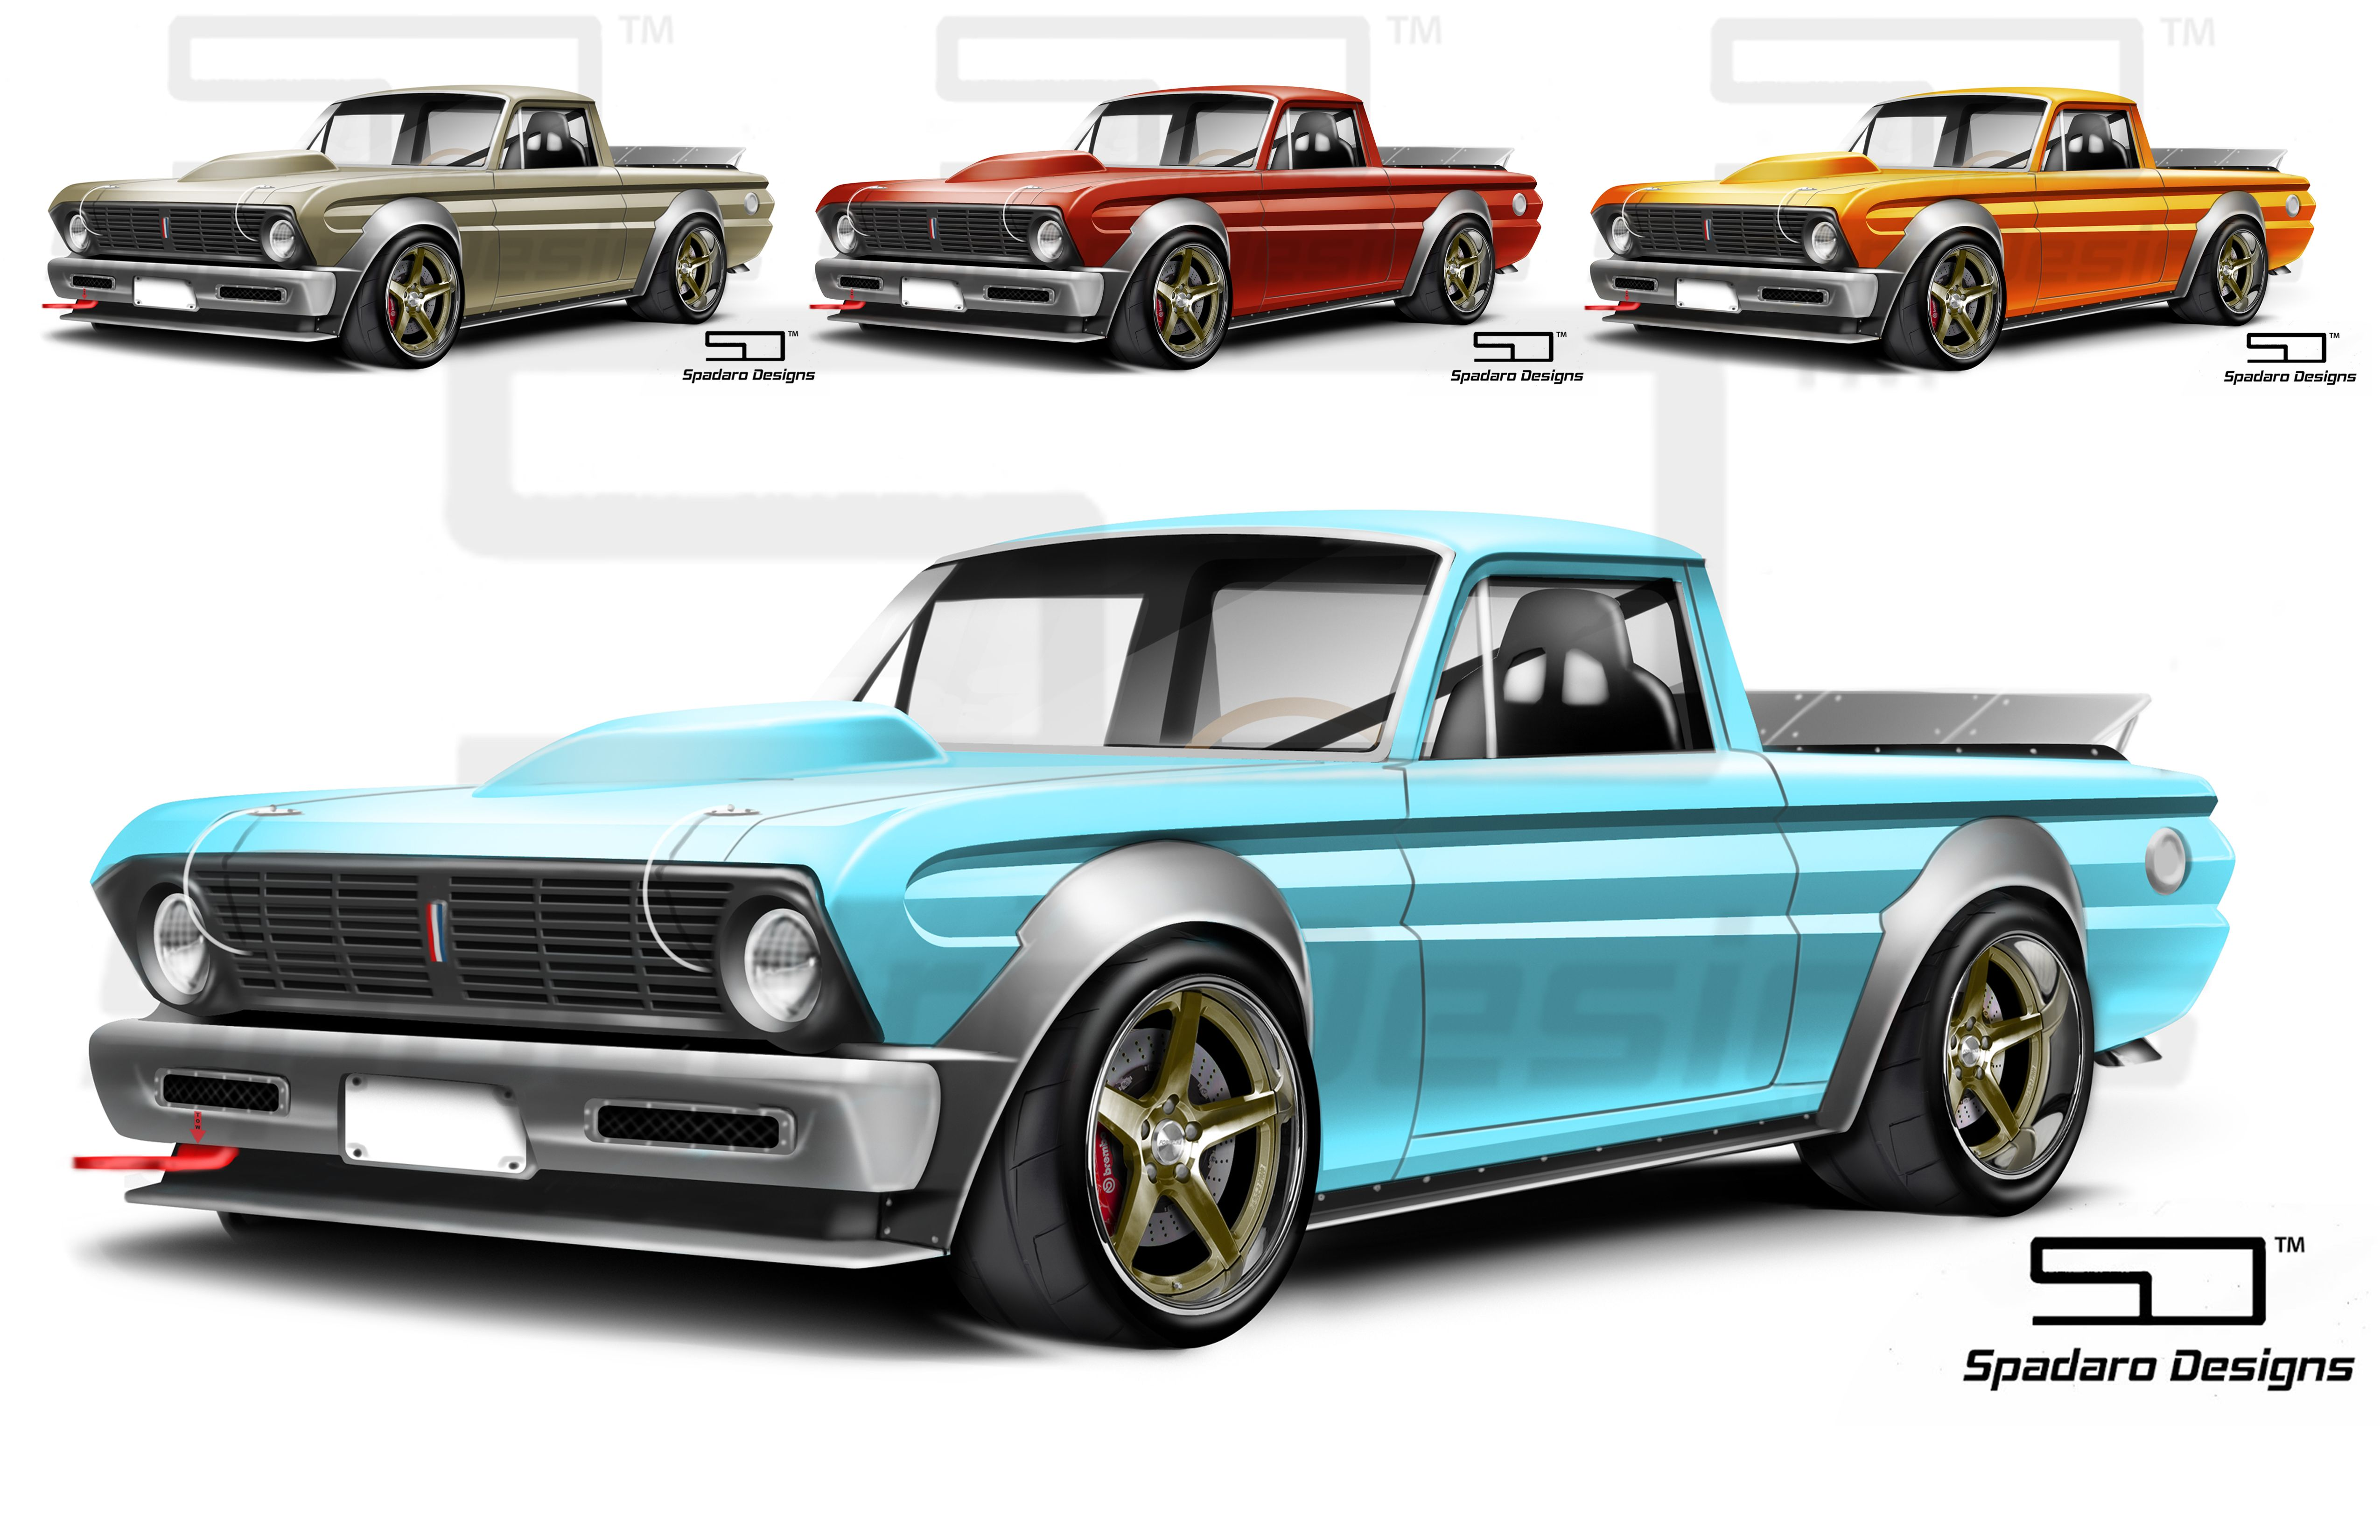 1965 Ford Ranchero Track Truck Design I Did Today Ford Pickup Trucks Old School Cars Automotive Illustration